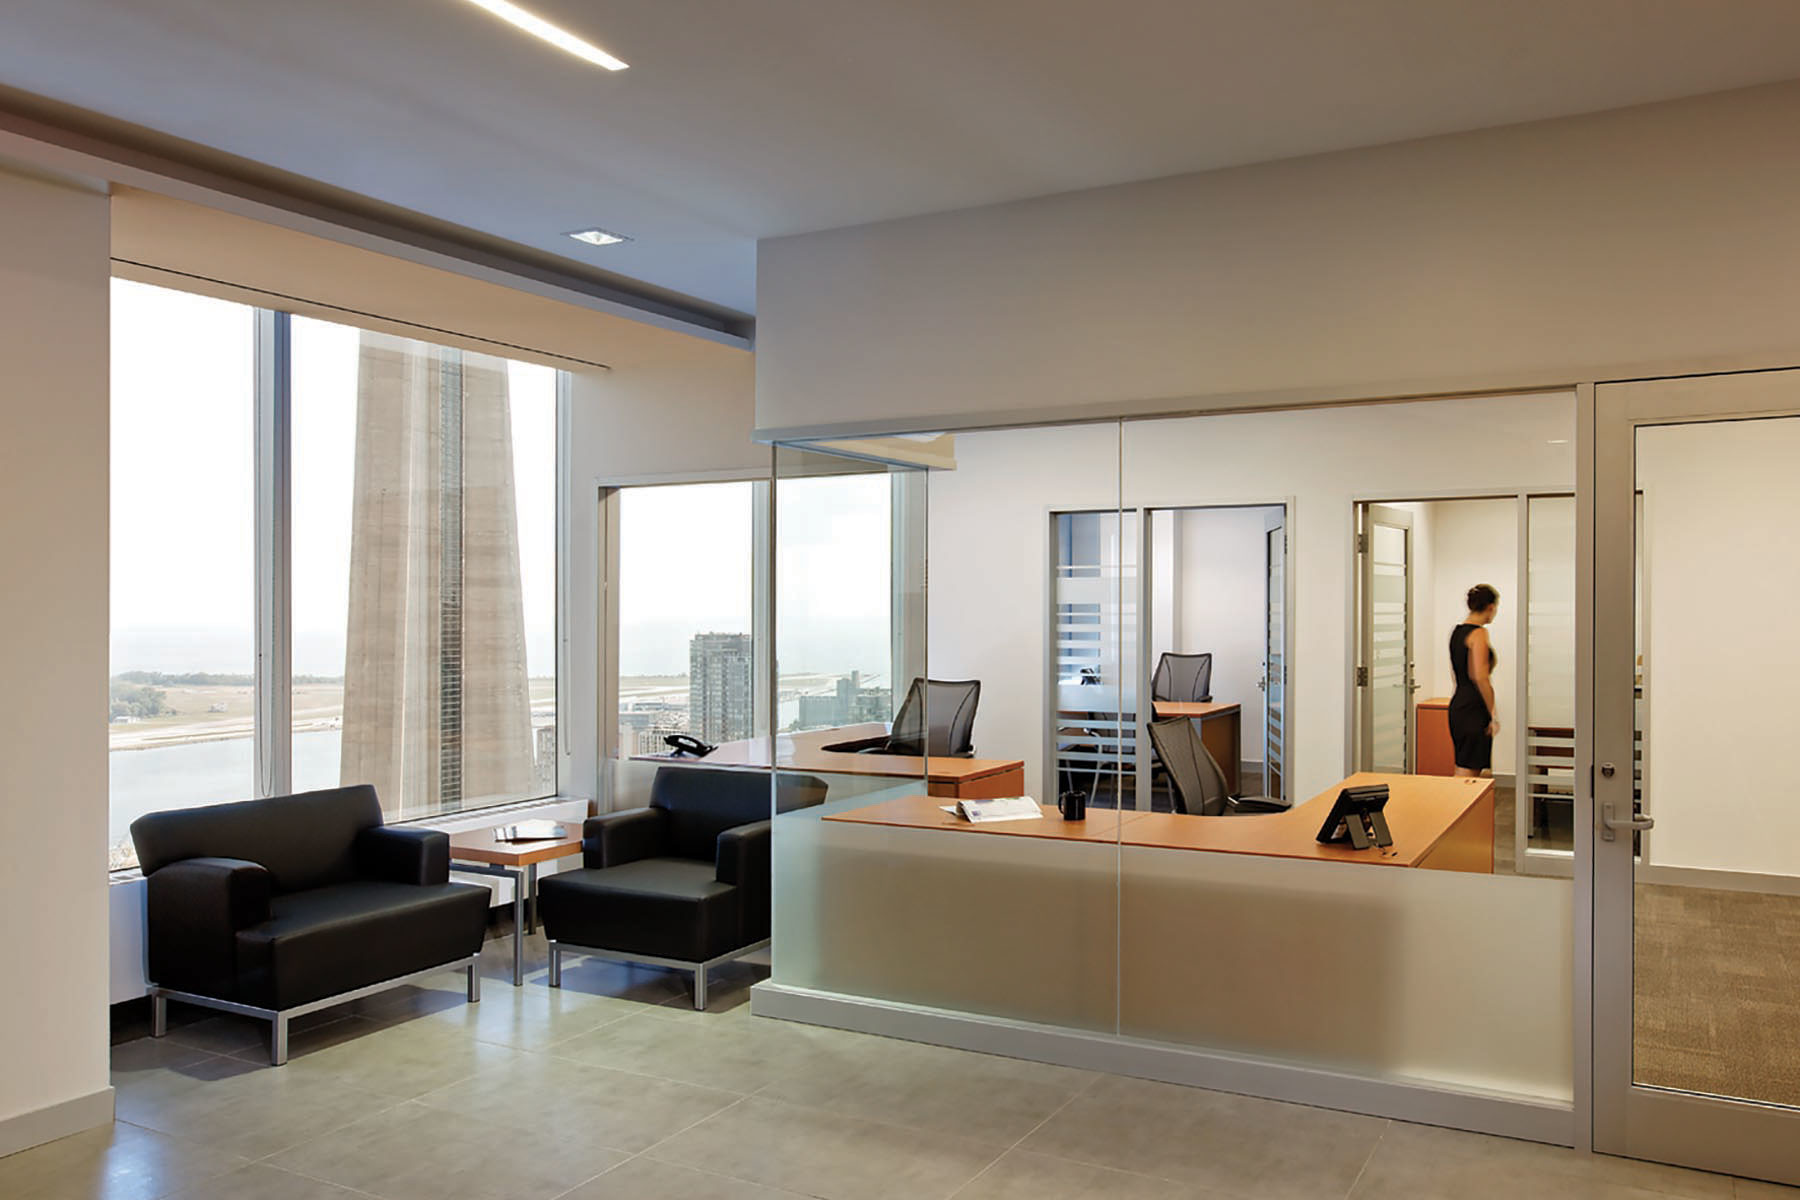 Corner lounge seating with views of Lake Ontario and CN Towner with glazed reception area and semi private offices